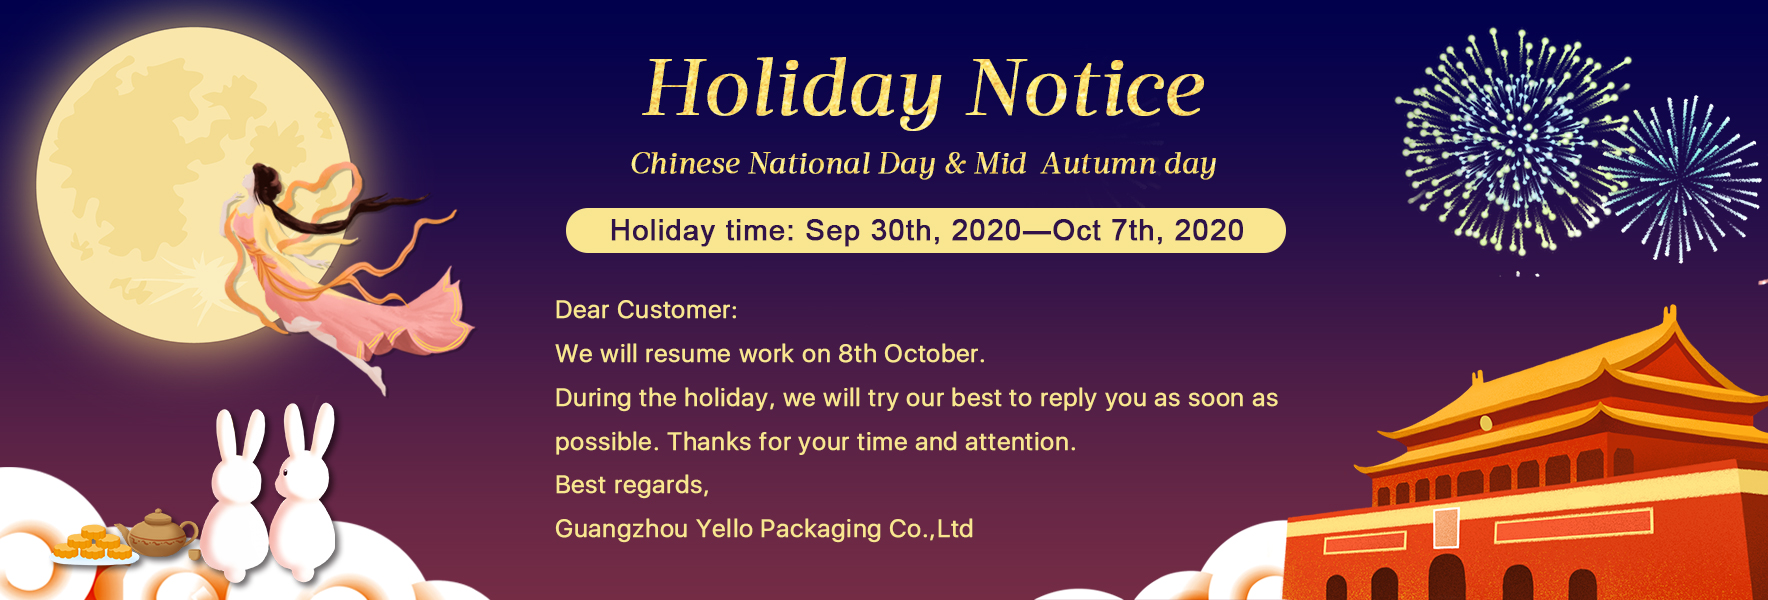 Holiday Notice - Chinese National Day & Mid Autumn Day